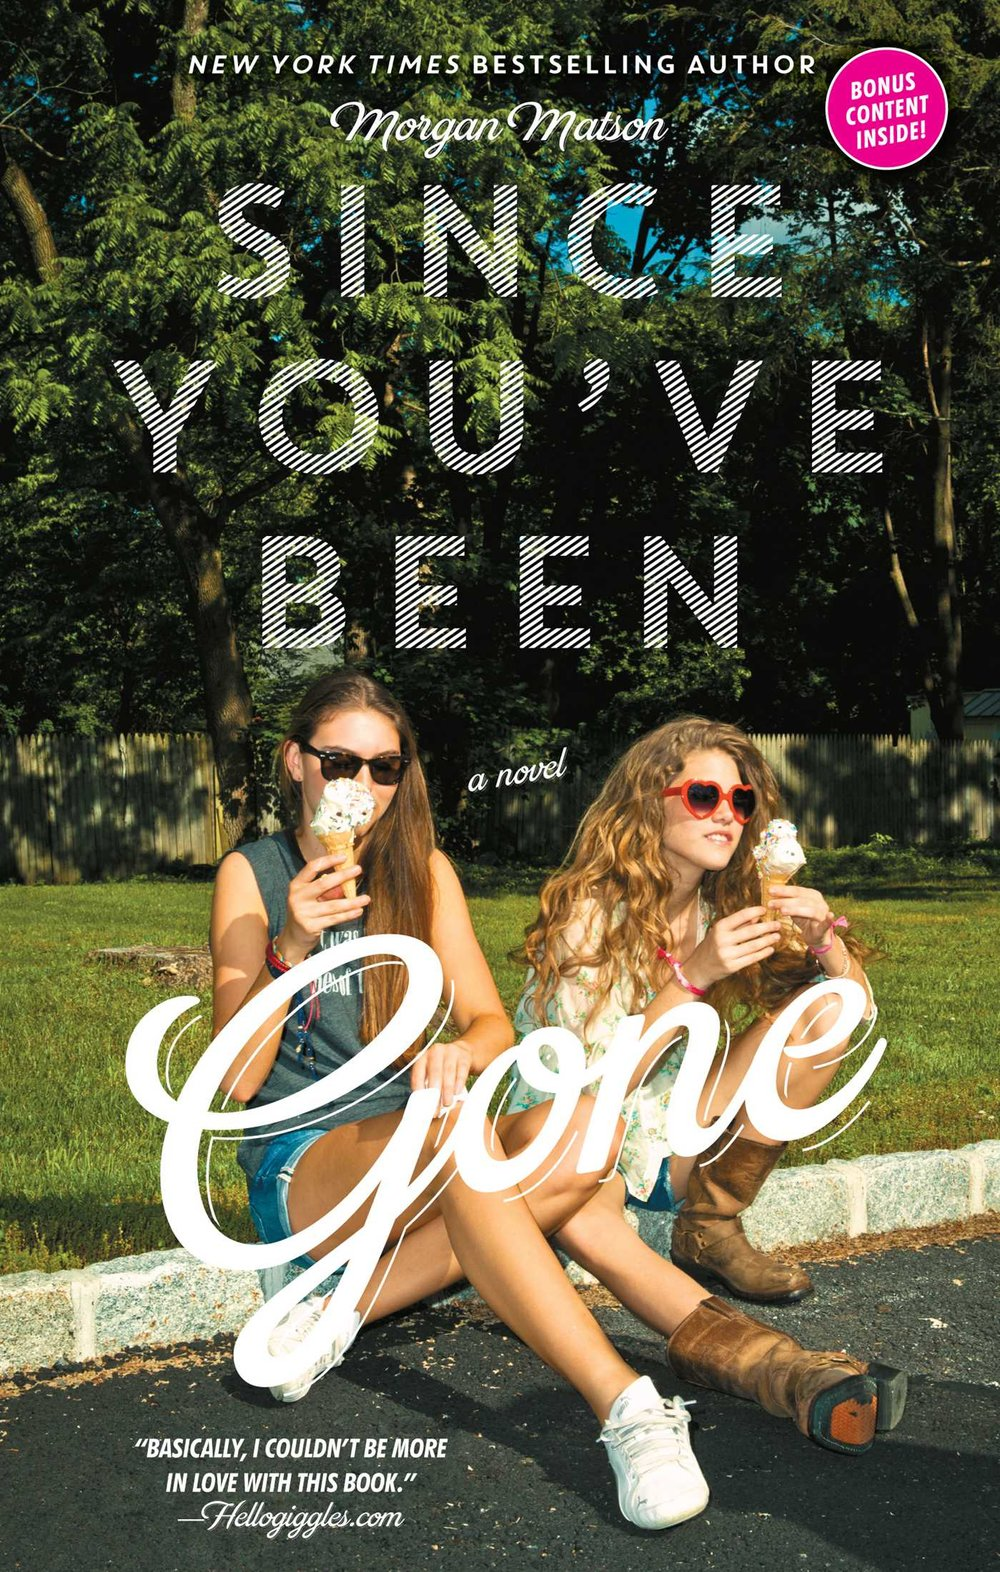 morgan-matson-since-youve-been-gone.jpg